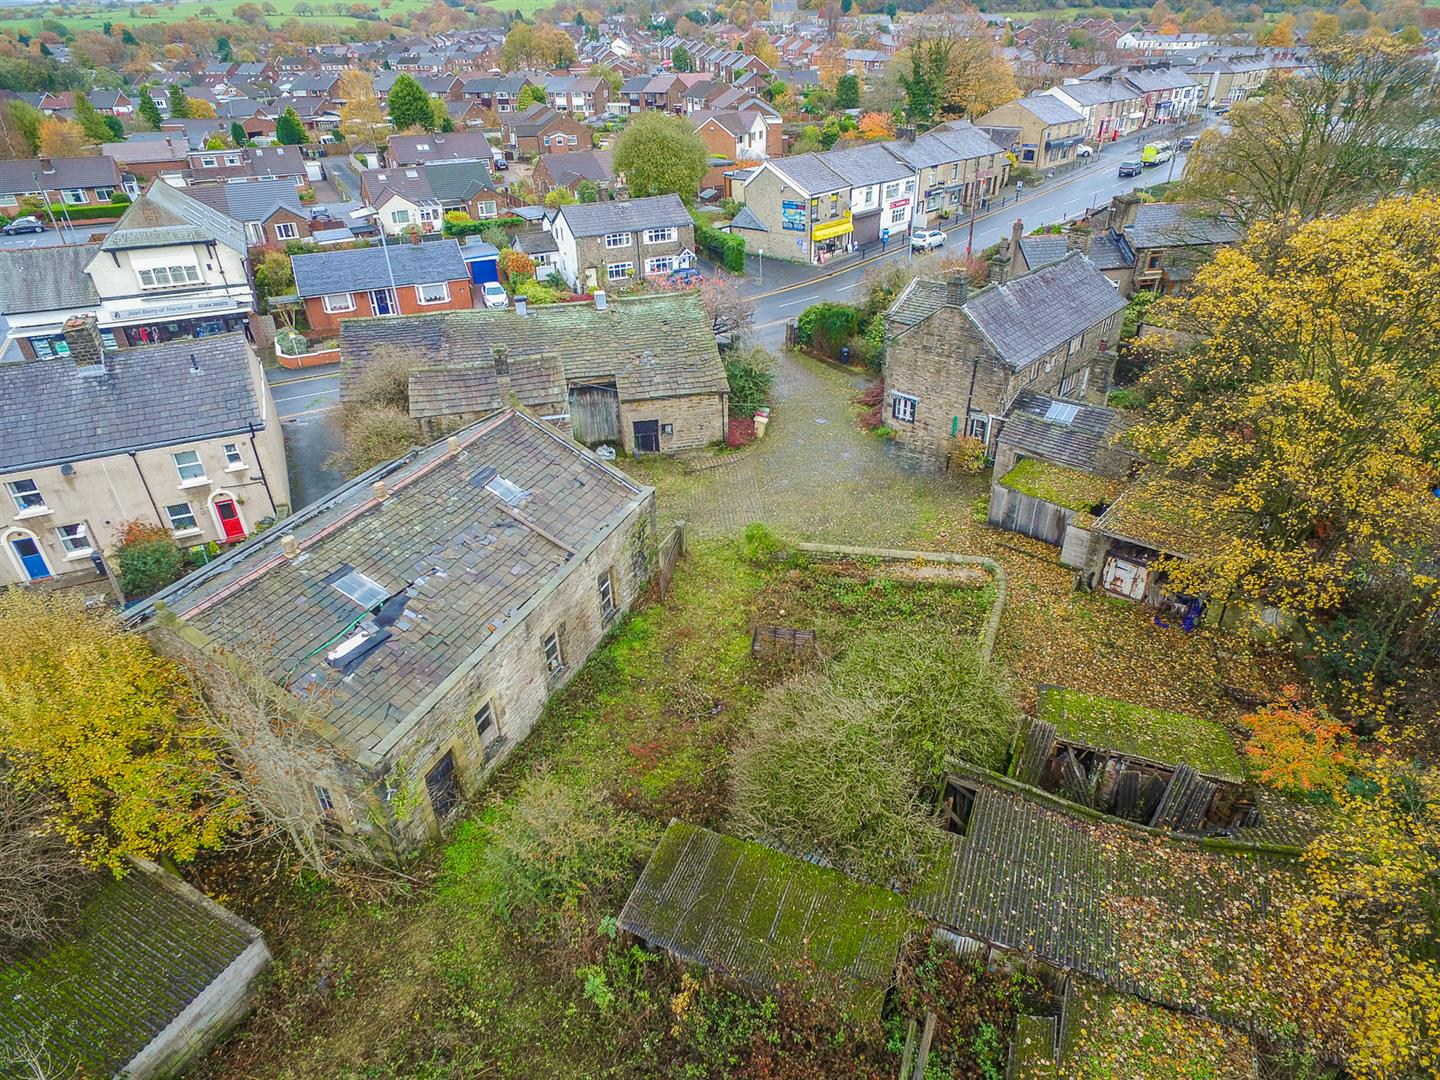 0 bedroom property with land For Sale in Bolton - DJI_0004.jpg.